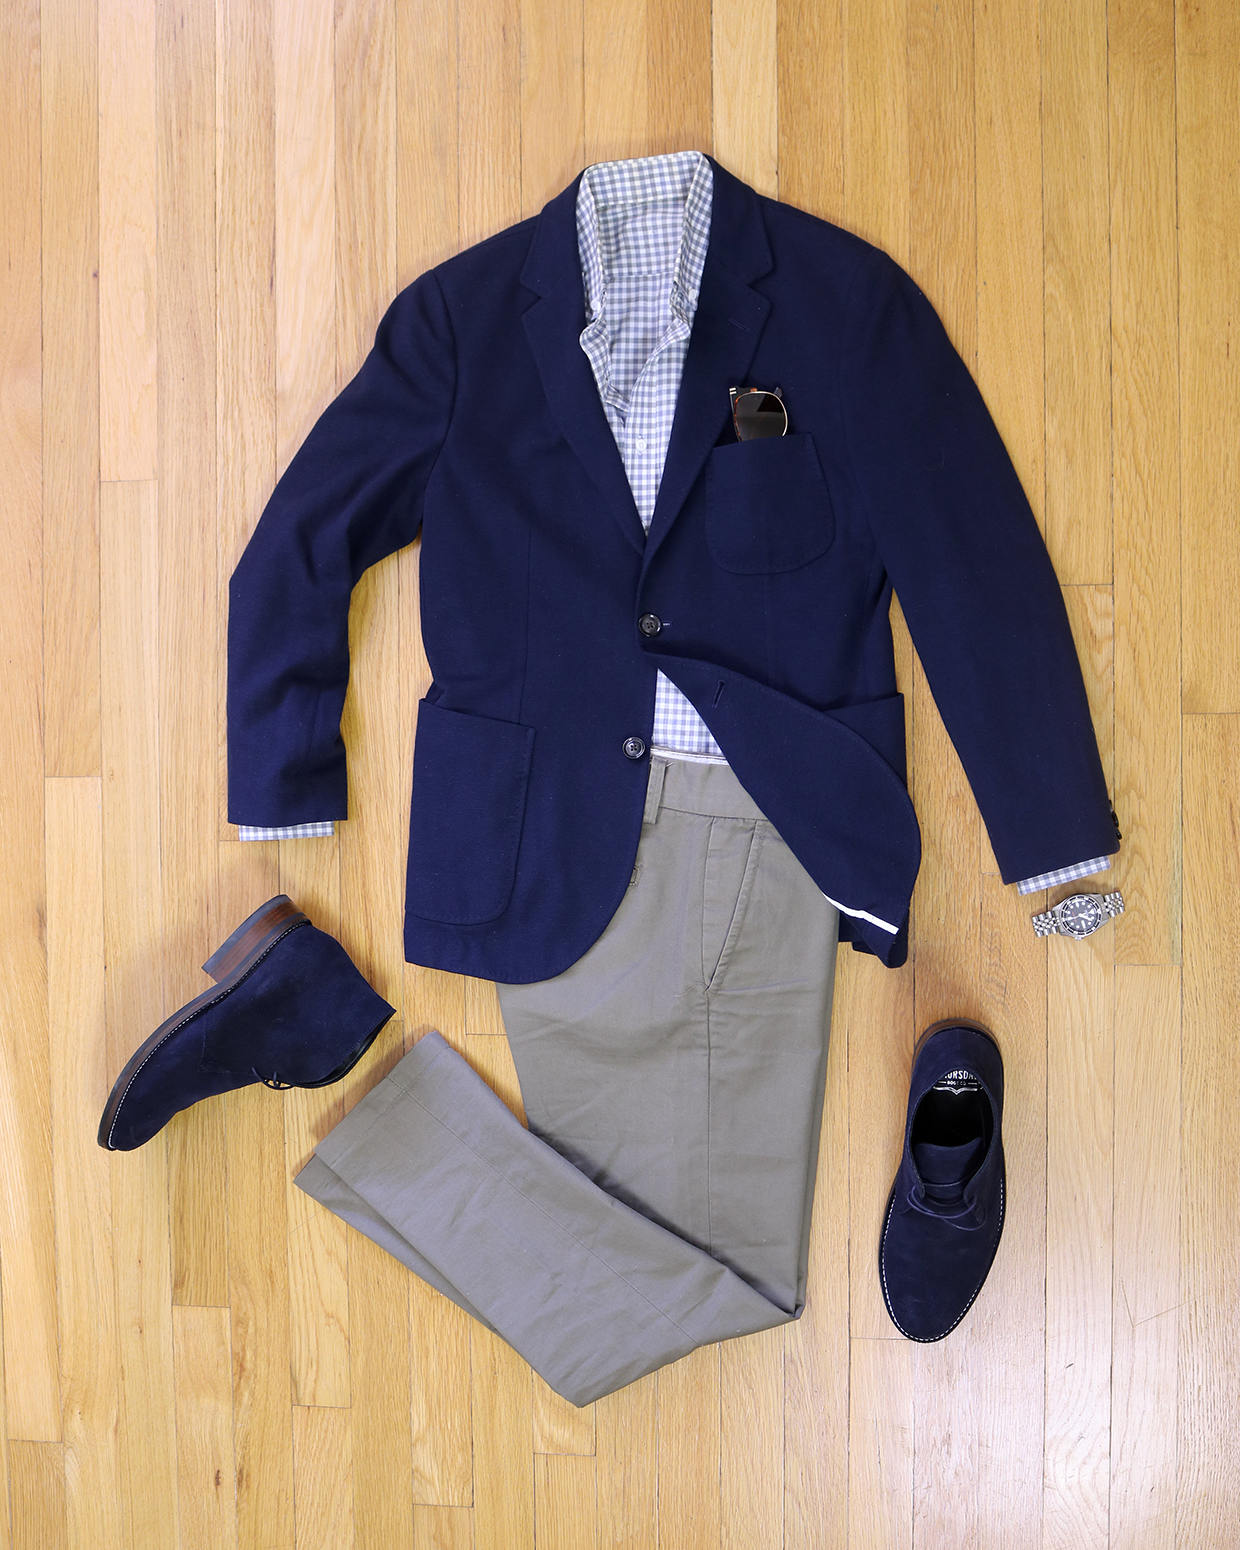 Business casual chukka outfit